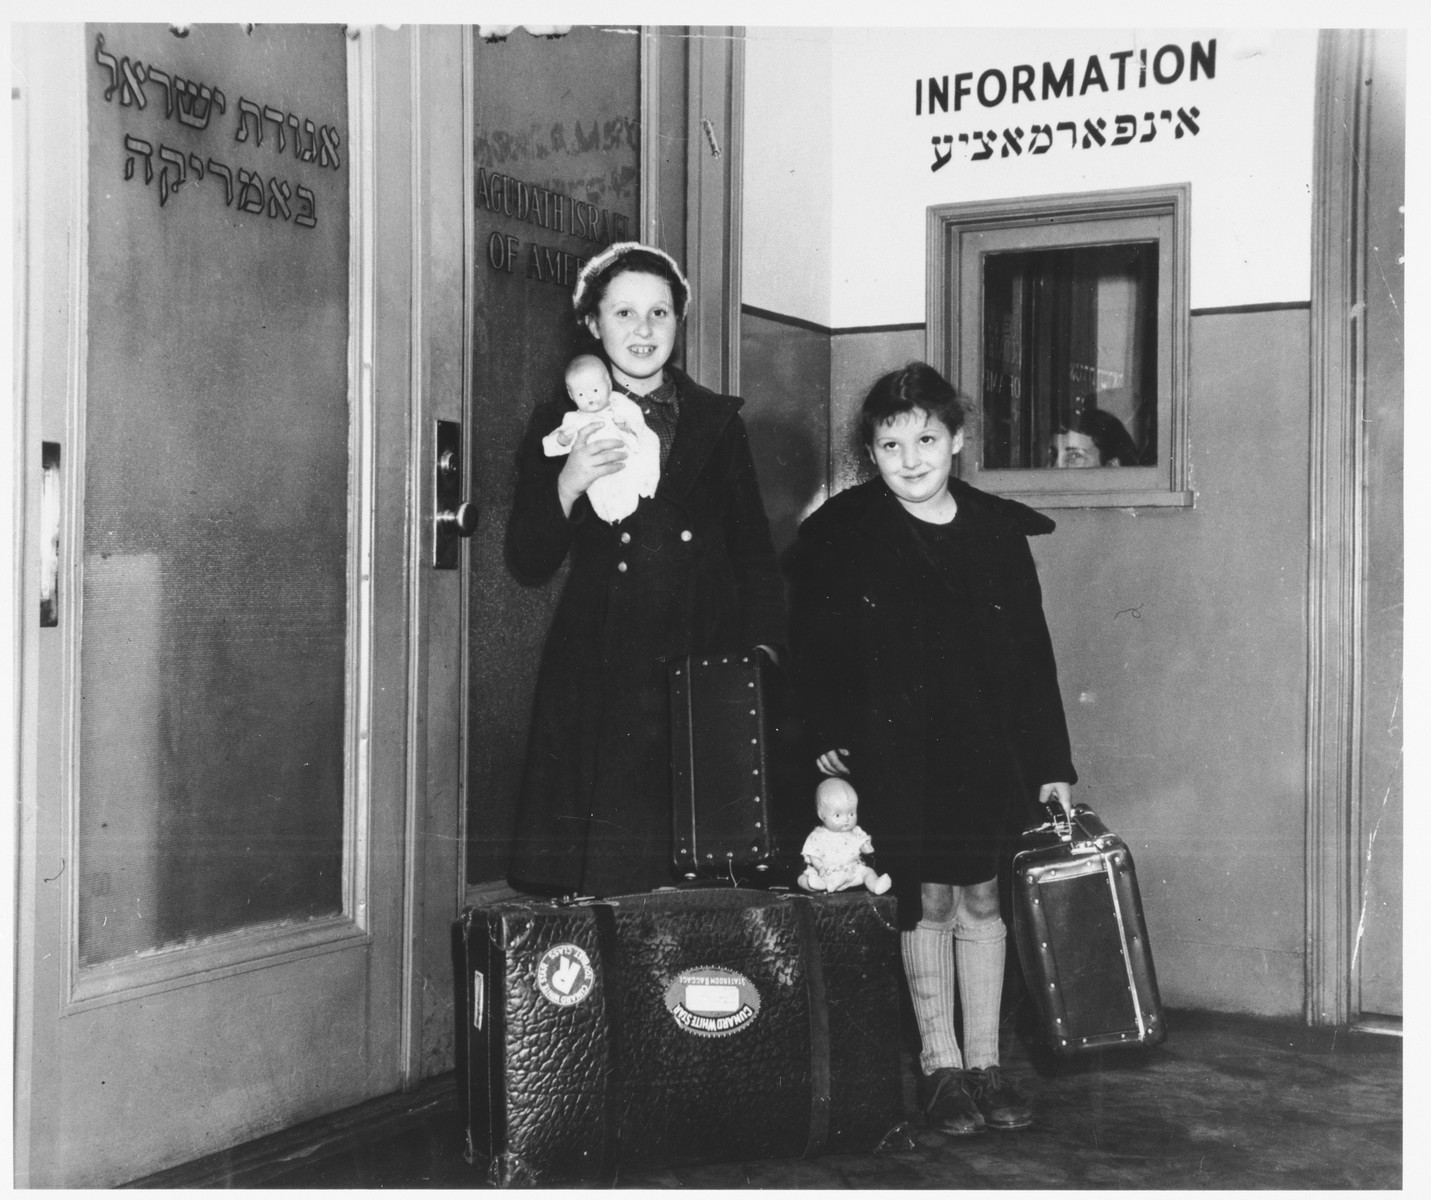 Two Jewish sisters, Dora and Marie Claire Rakowski, arrive at the offices of the Agudat Yisrael in New York holding new dolls and their suitcases.